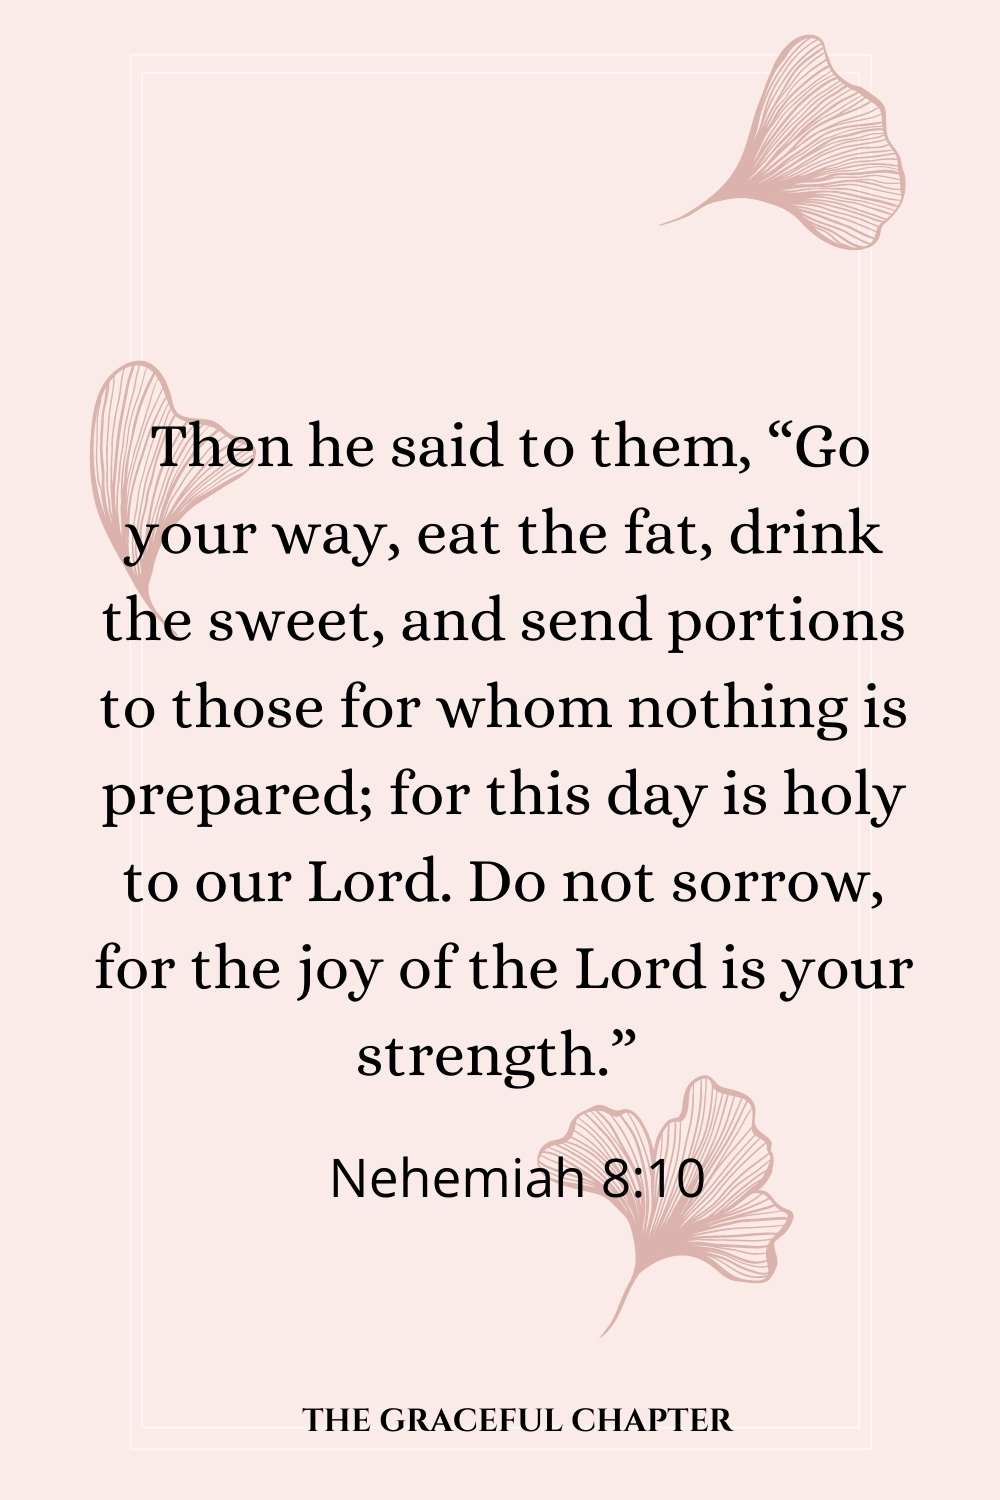 """Then he said to them, """"Go your way, eat the fat, drink the sweet, and send portions to those for whom nothing is prepared; for this day is holy to our Lord. Do not sorrow, for the joy of the Lord is your strength.""""  Nehemiah 8:10"""